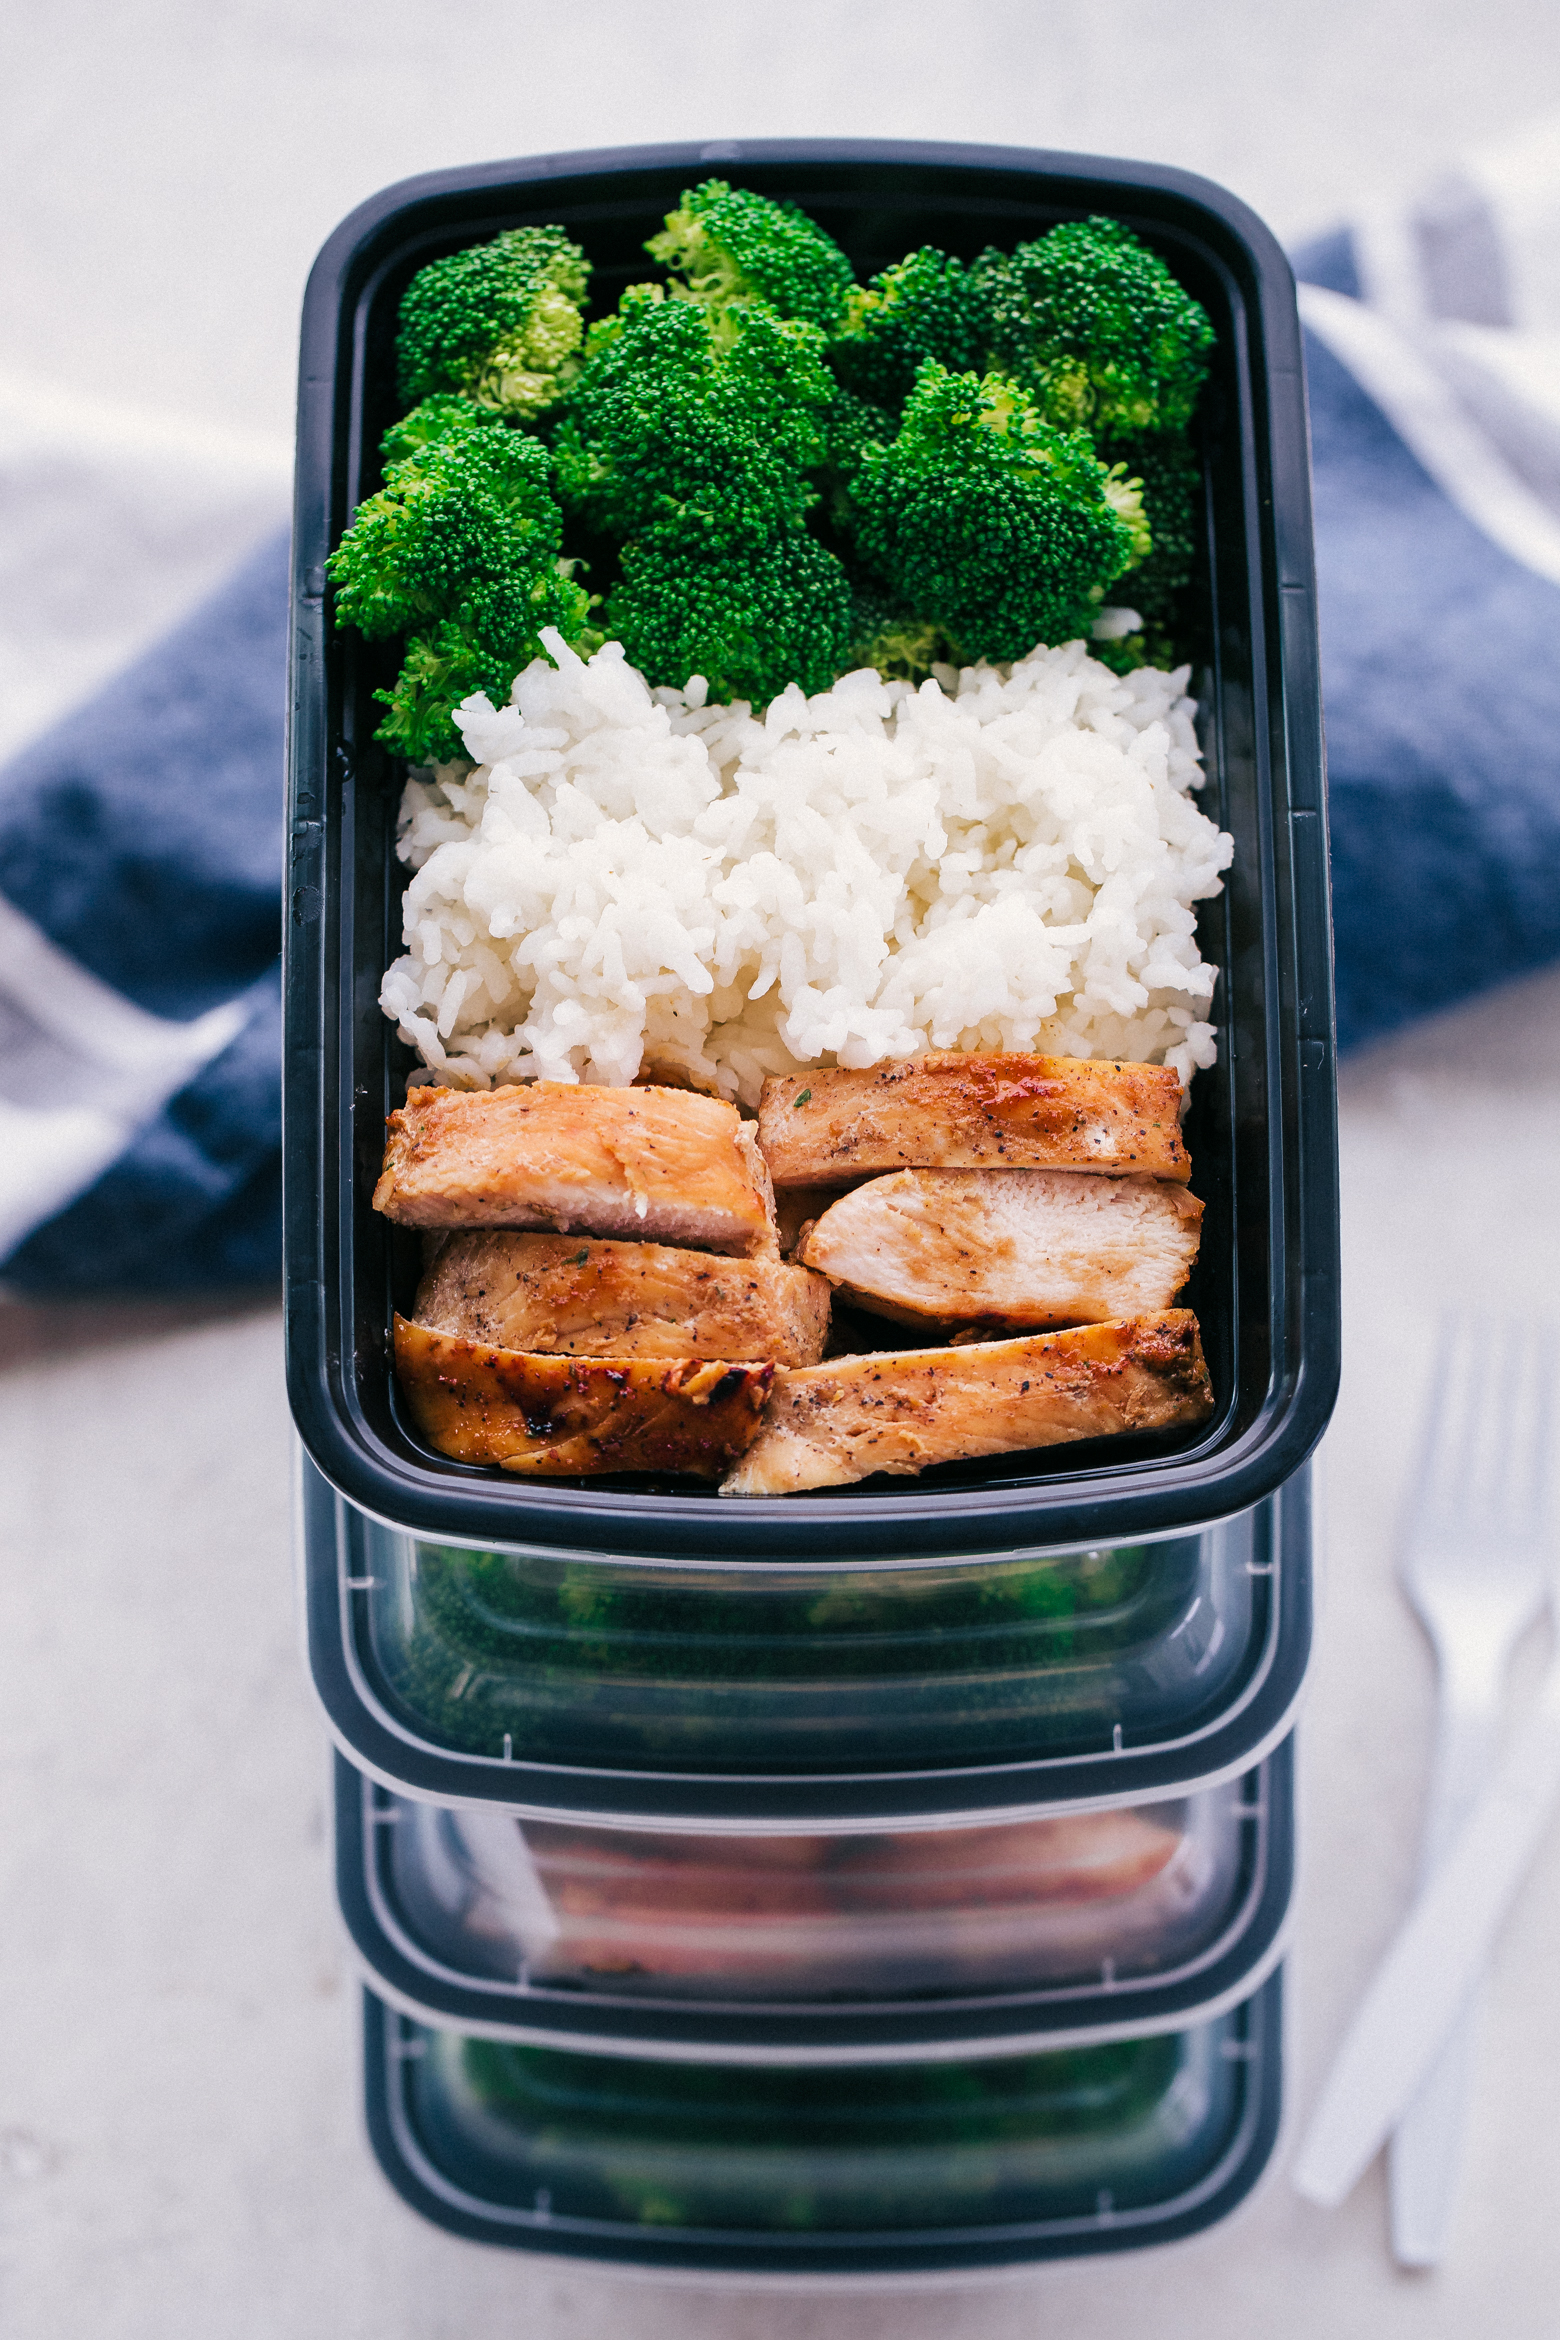 meal prep ideas with teriyaki chicken, white rice and steamed broccoli by The Food Cafe.